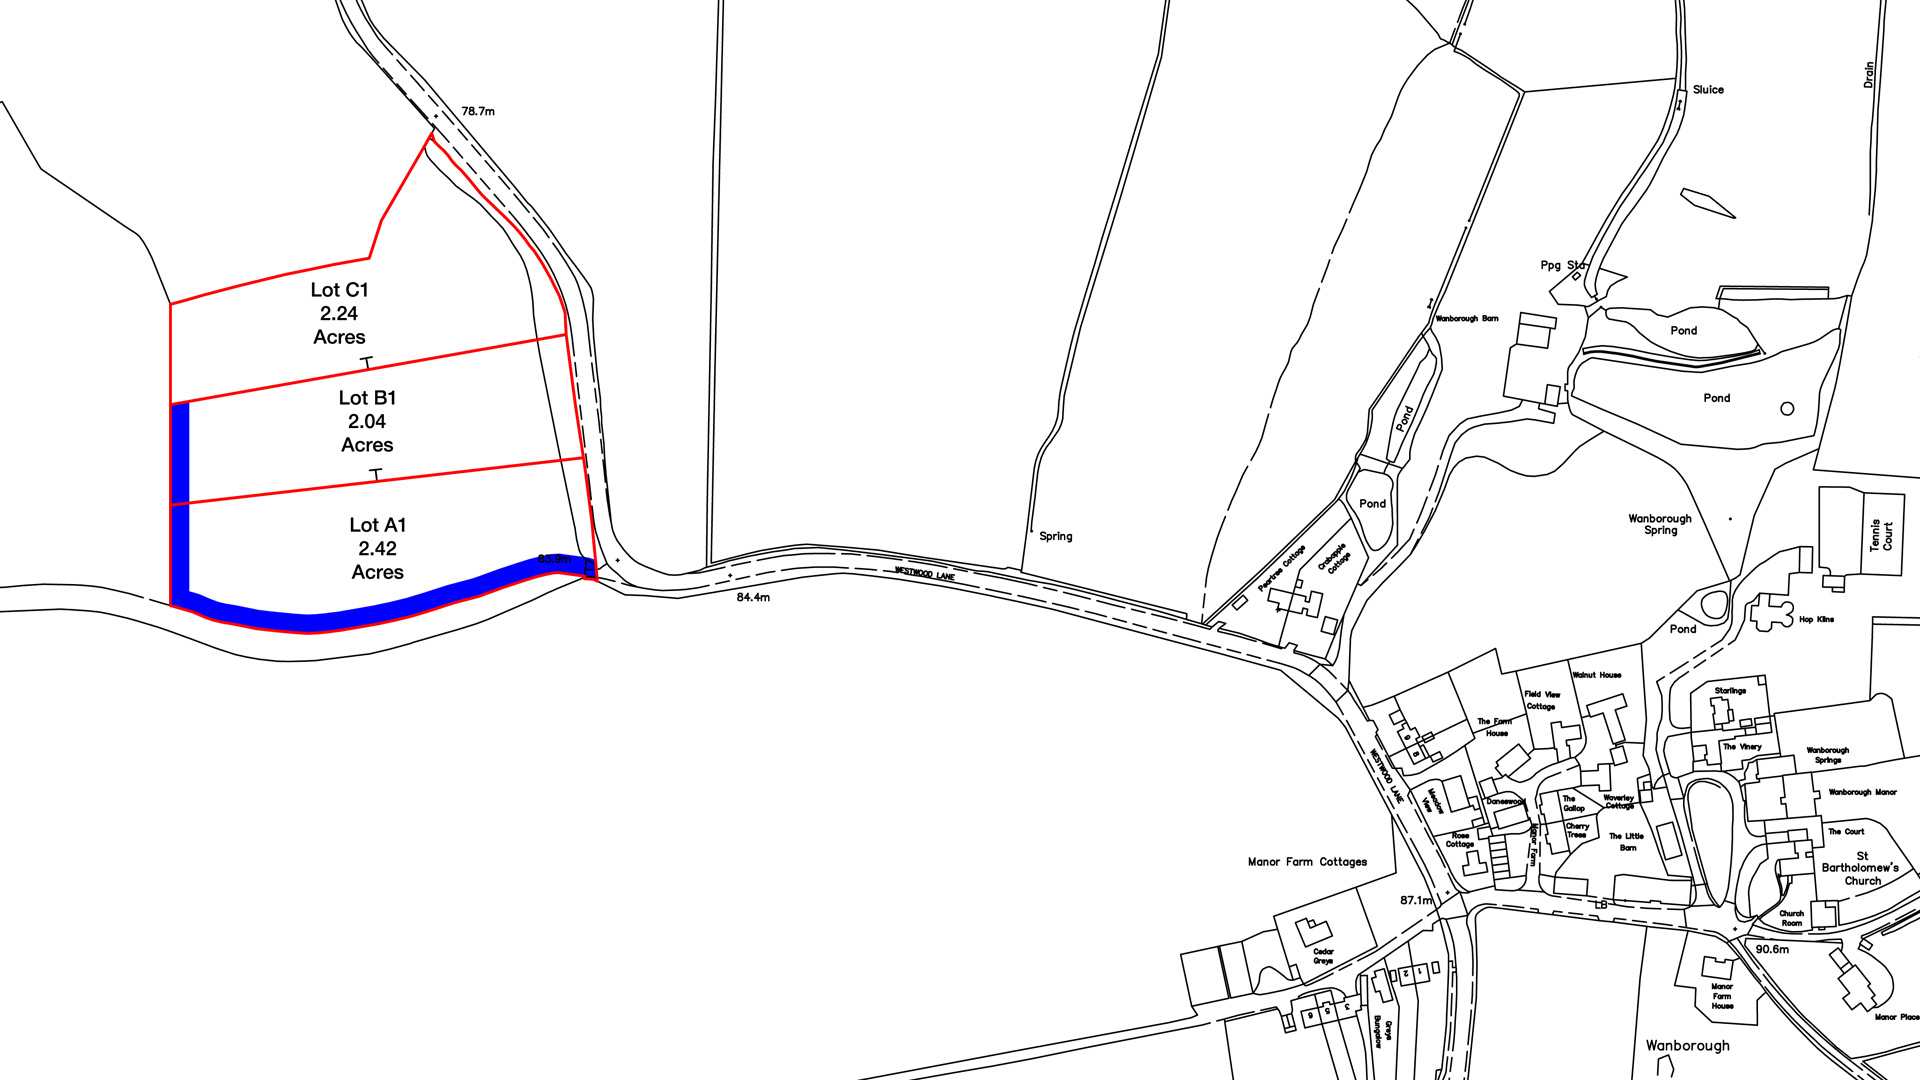 Land for sale in Guildford site plan